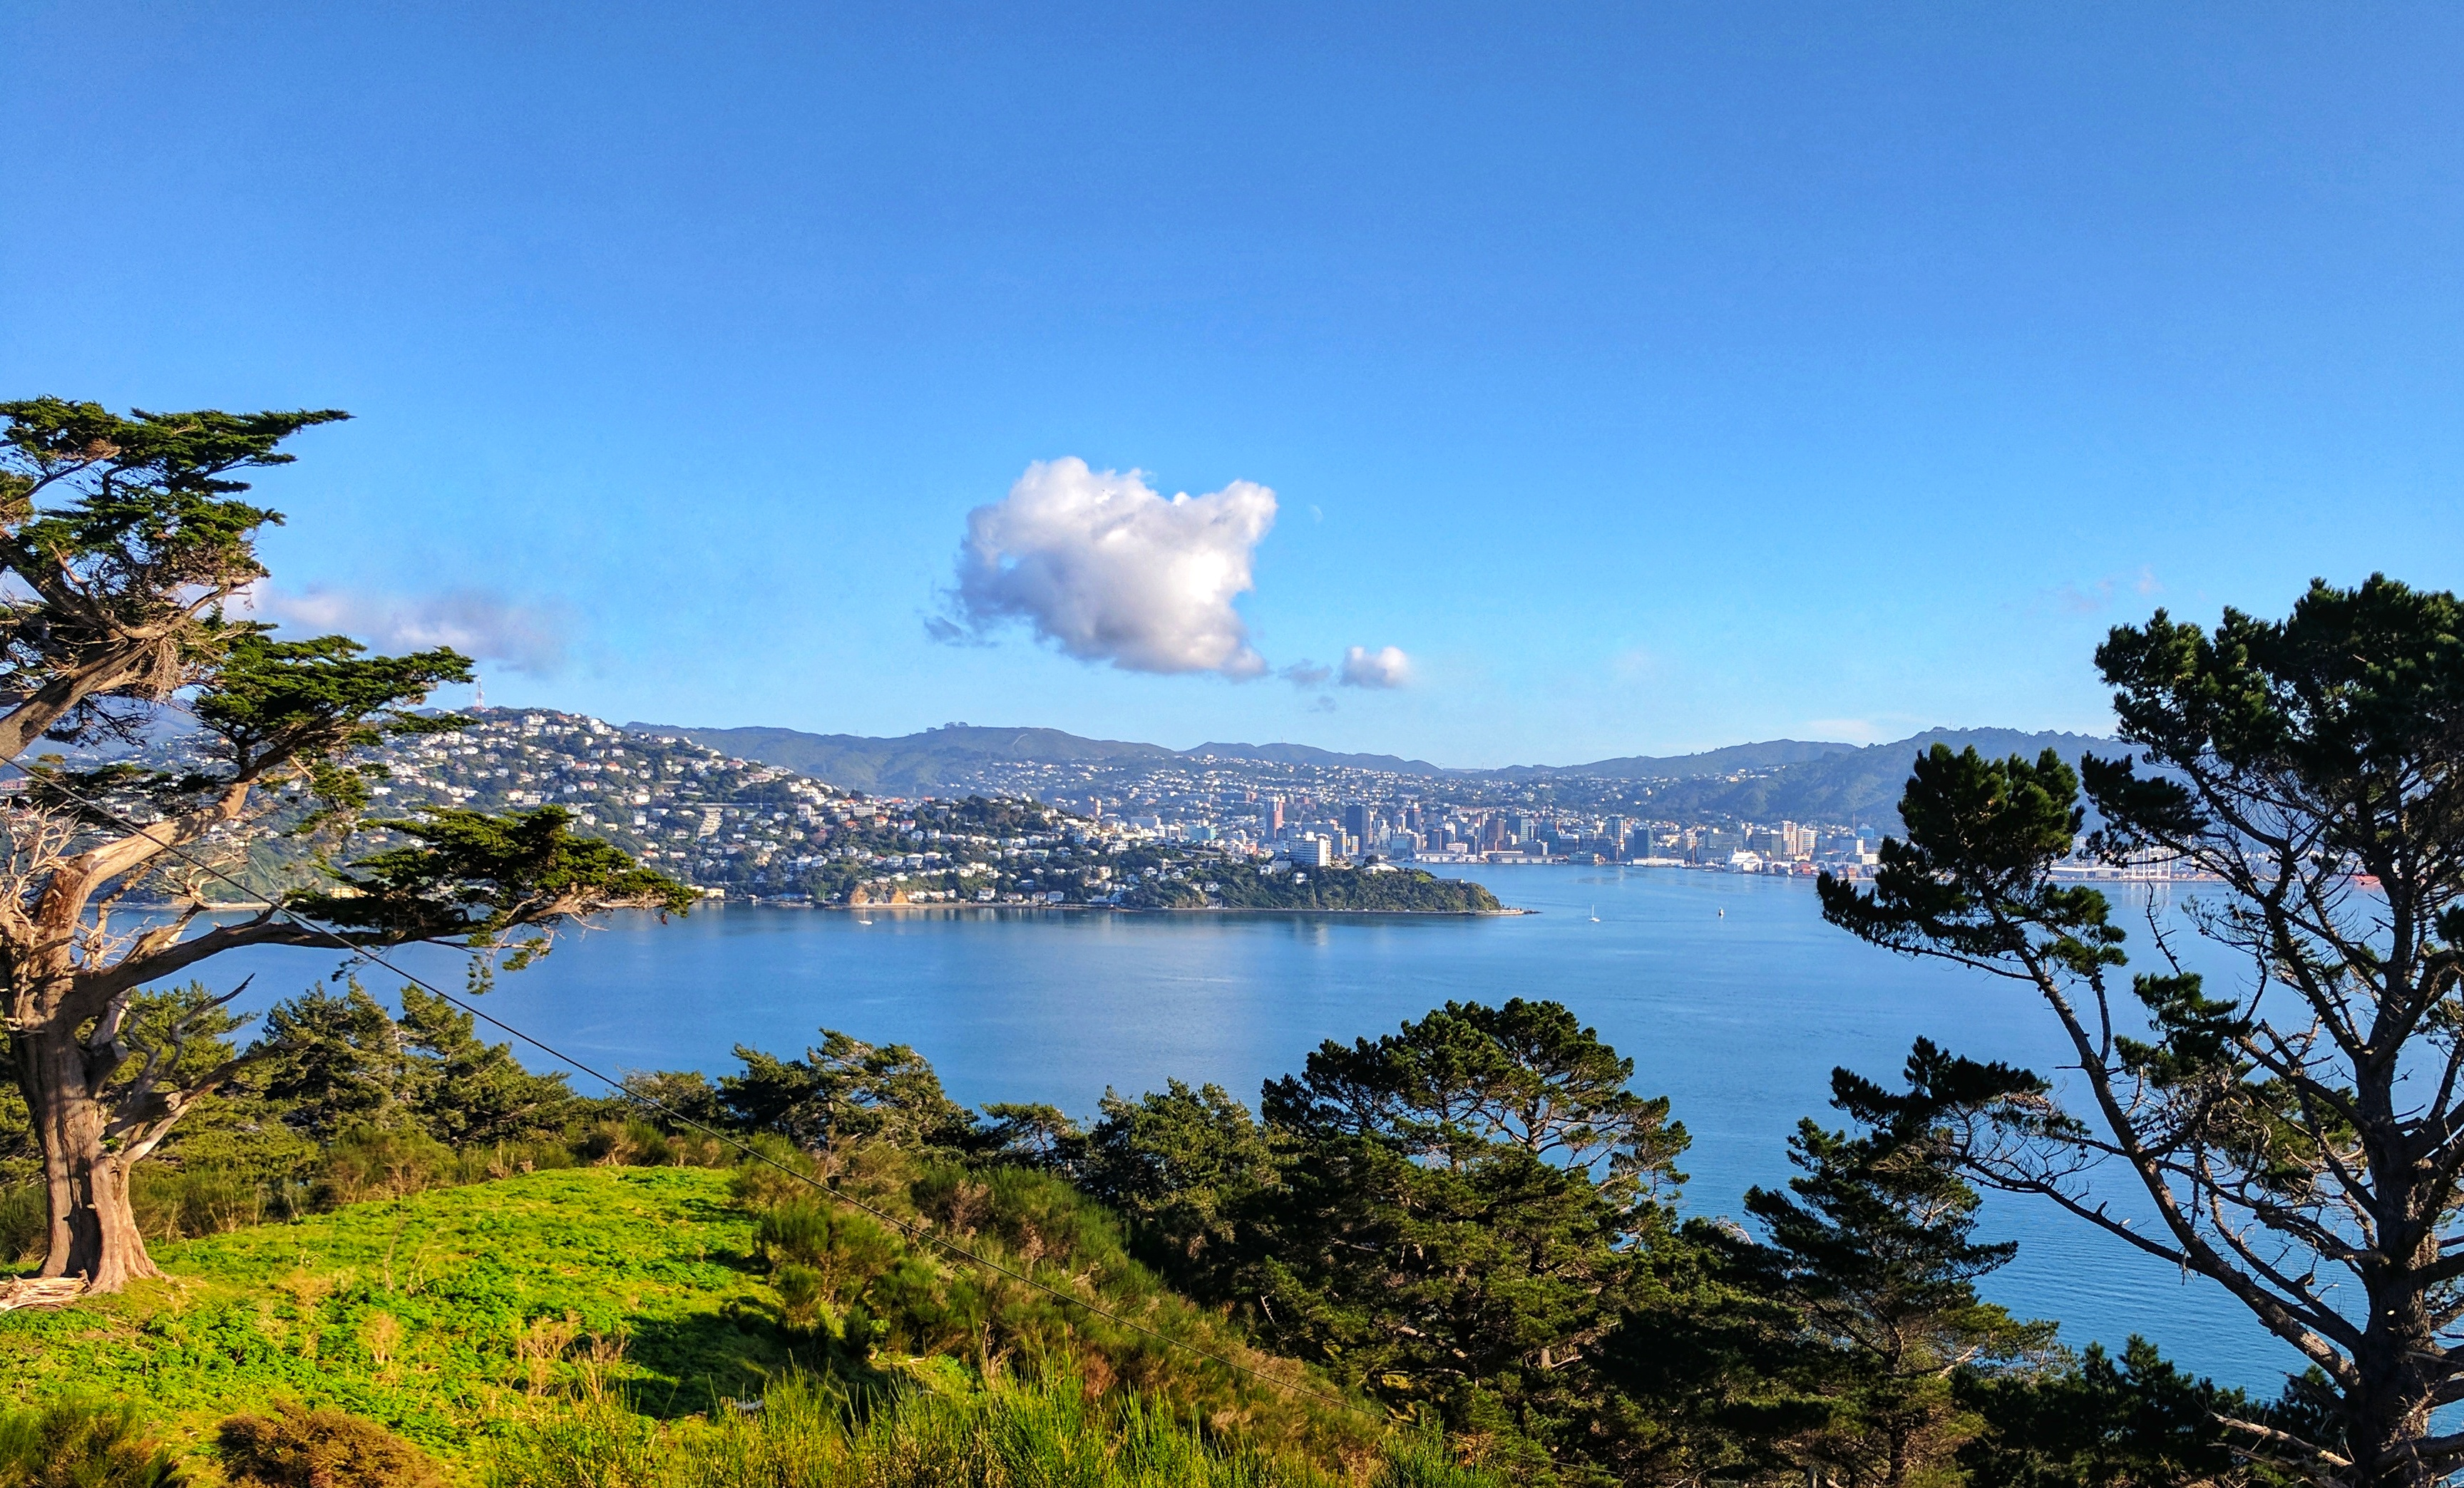 Wellington view from Maupuia above the Massey Memorial